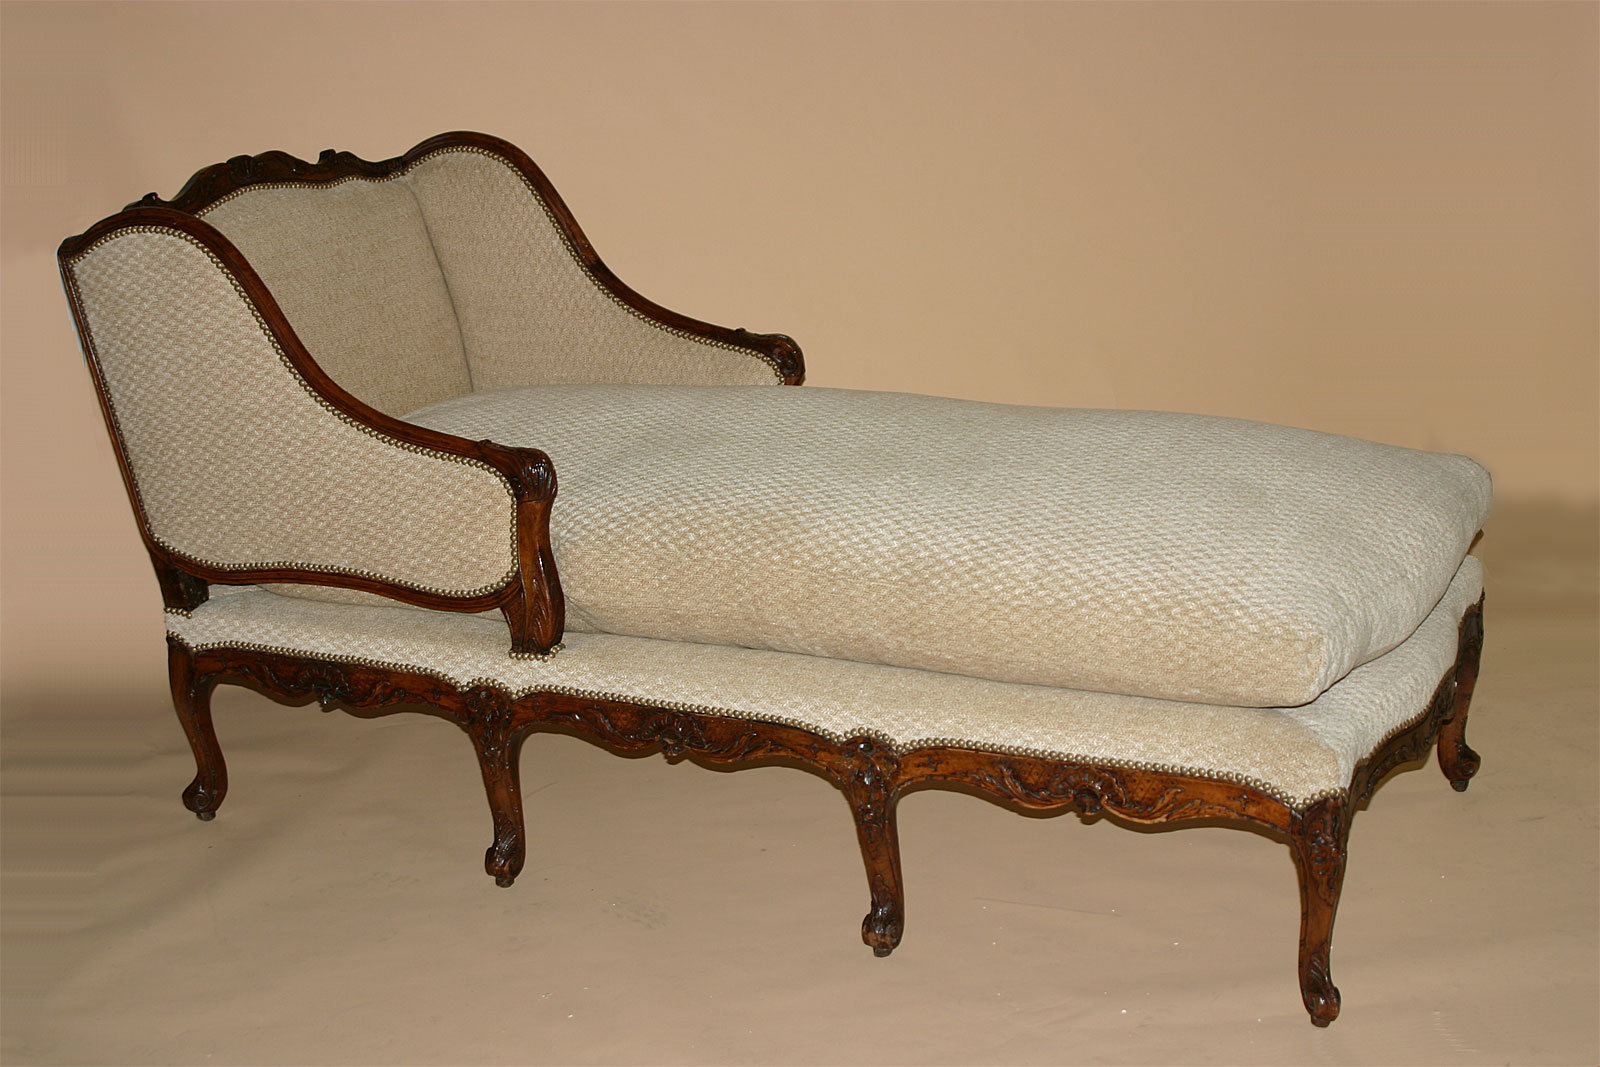 french louis xv period chaise longue. Black Bedroom Furniture Sets. Home Design Ideas